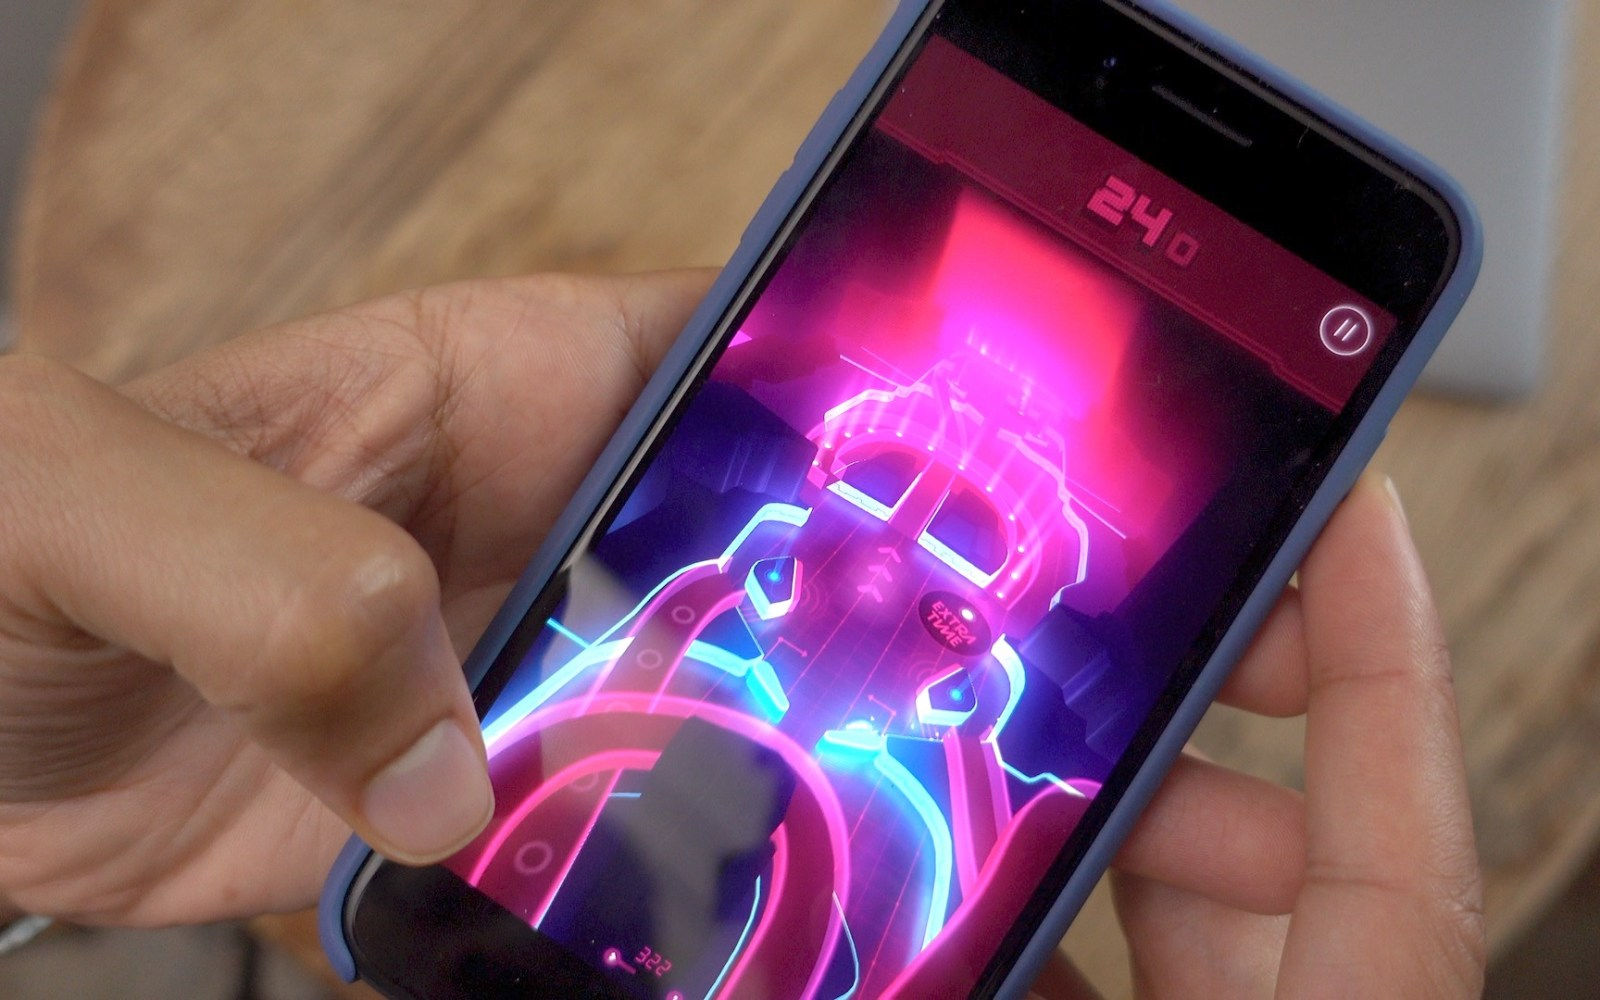 Friday 5: A sleek new pinball game, an app for quickly accessing photo metadata, and more [Video]